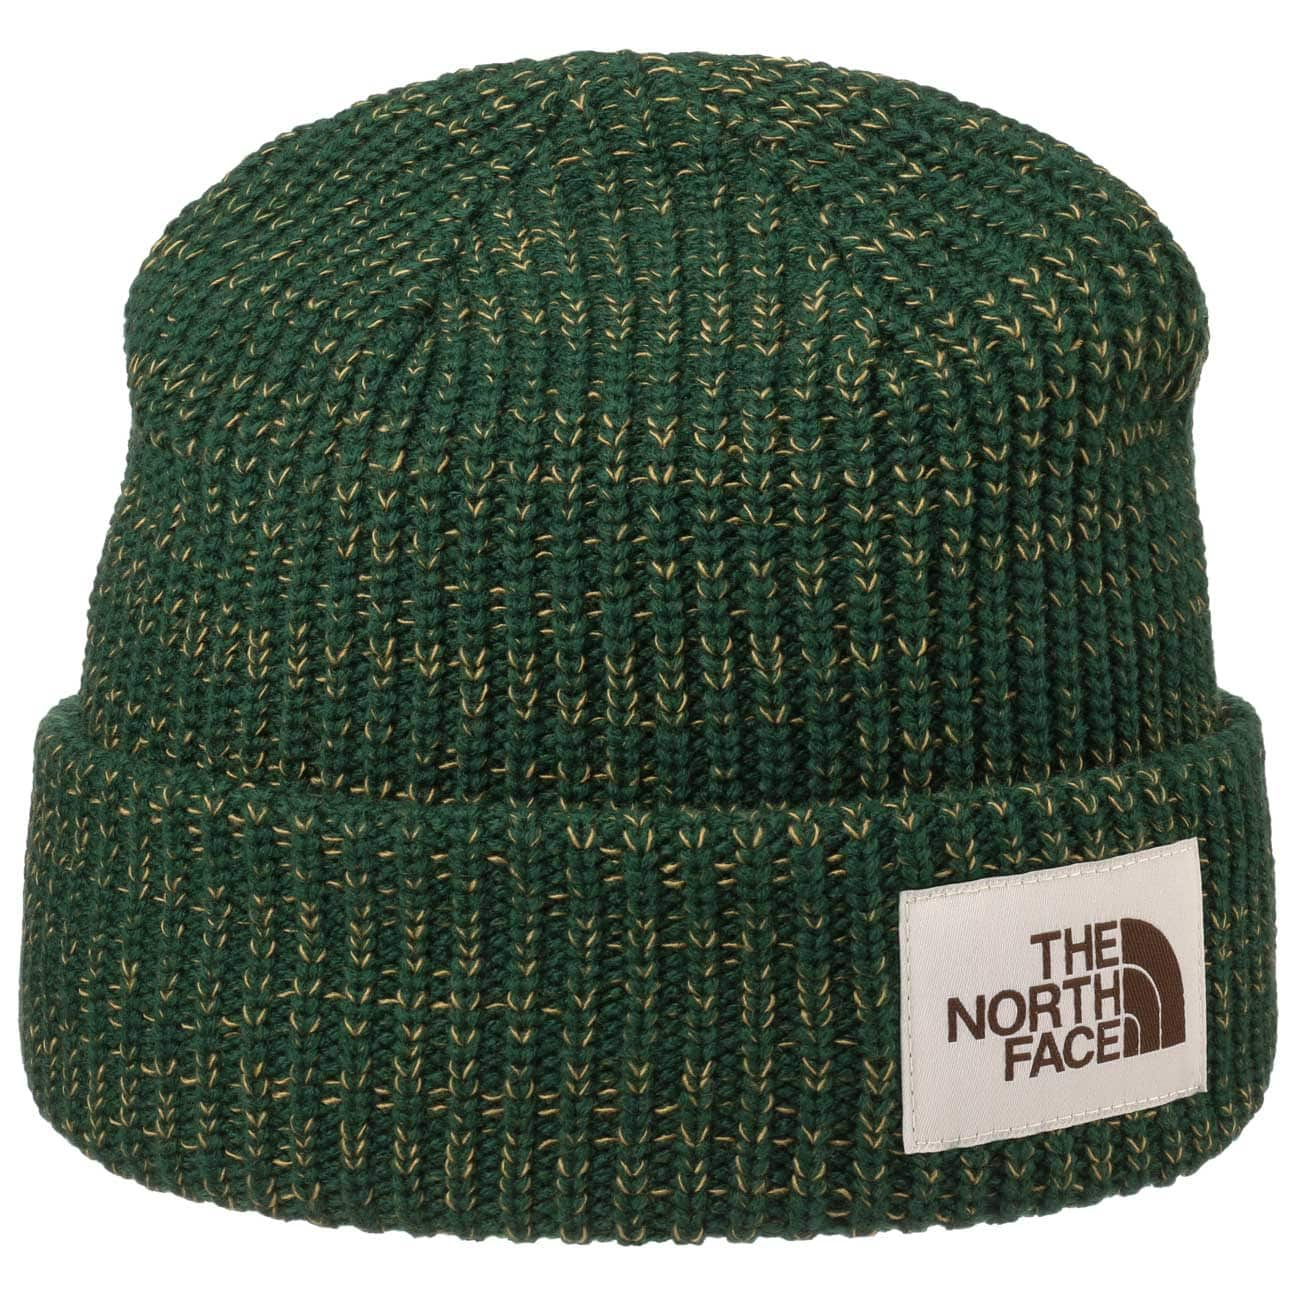 Bonnet Beanie Salty Dog by The North Face  bonnet pour l`hiver